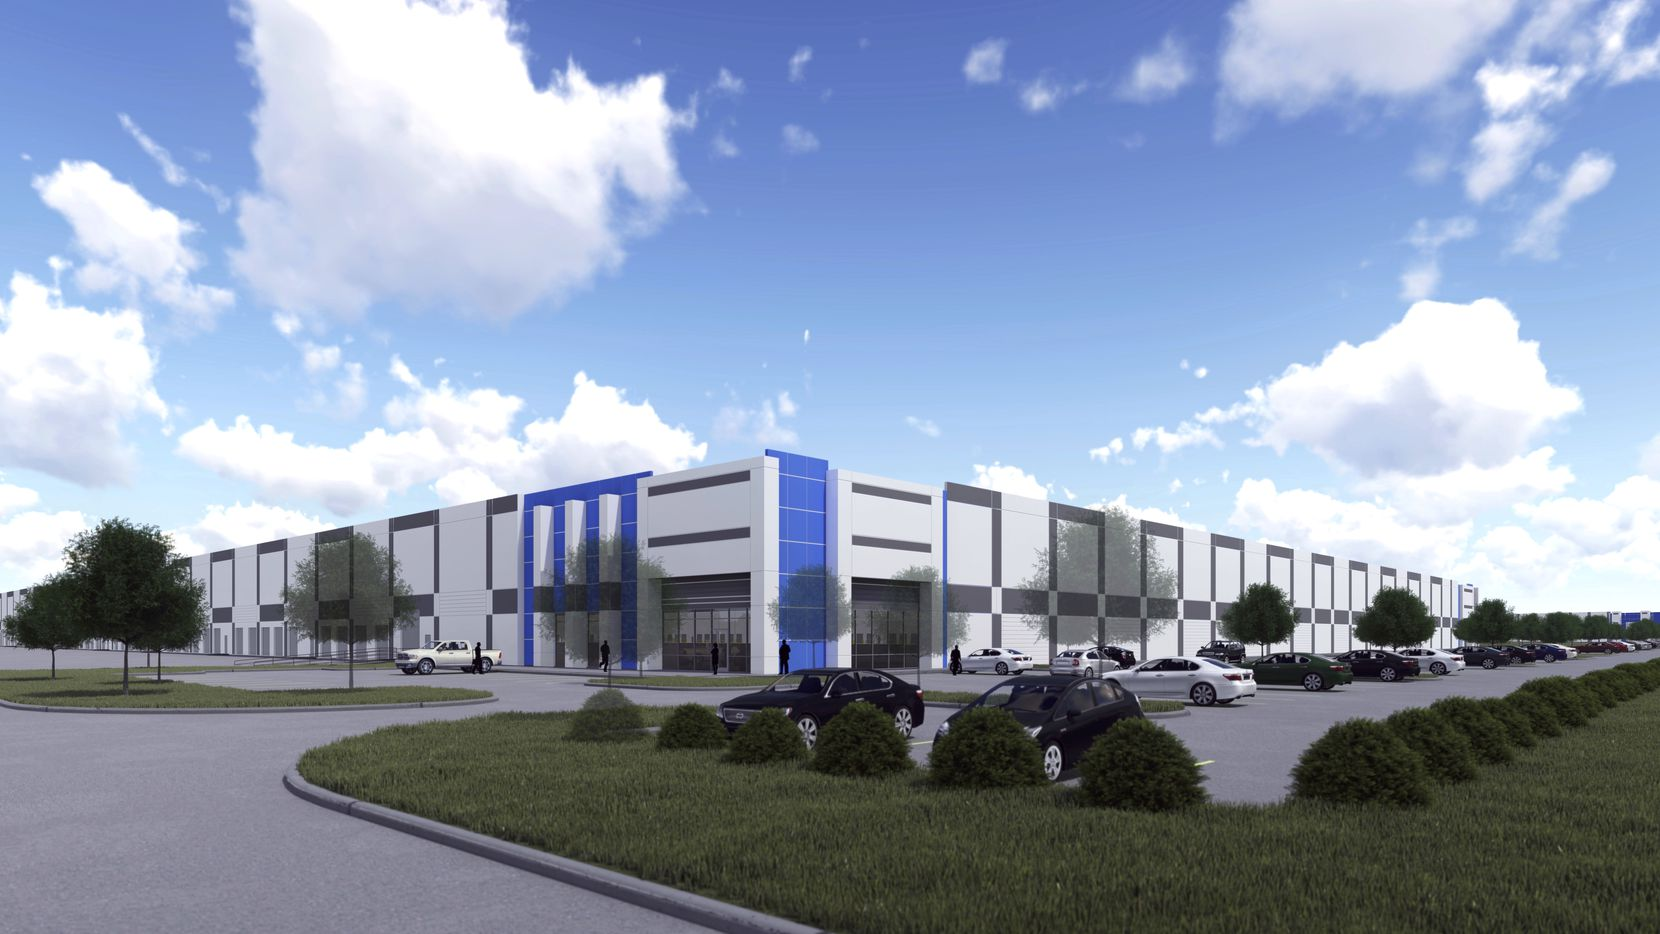 Logistics Property Co. is planning a 7-building business park in Mansfield.